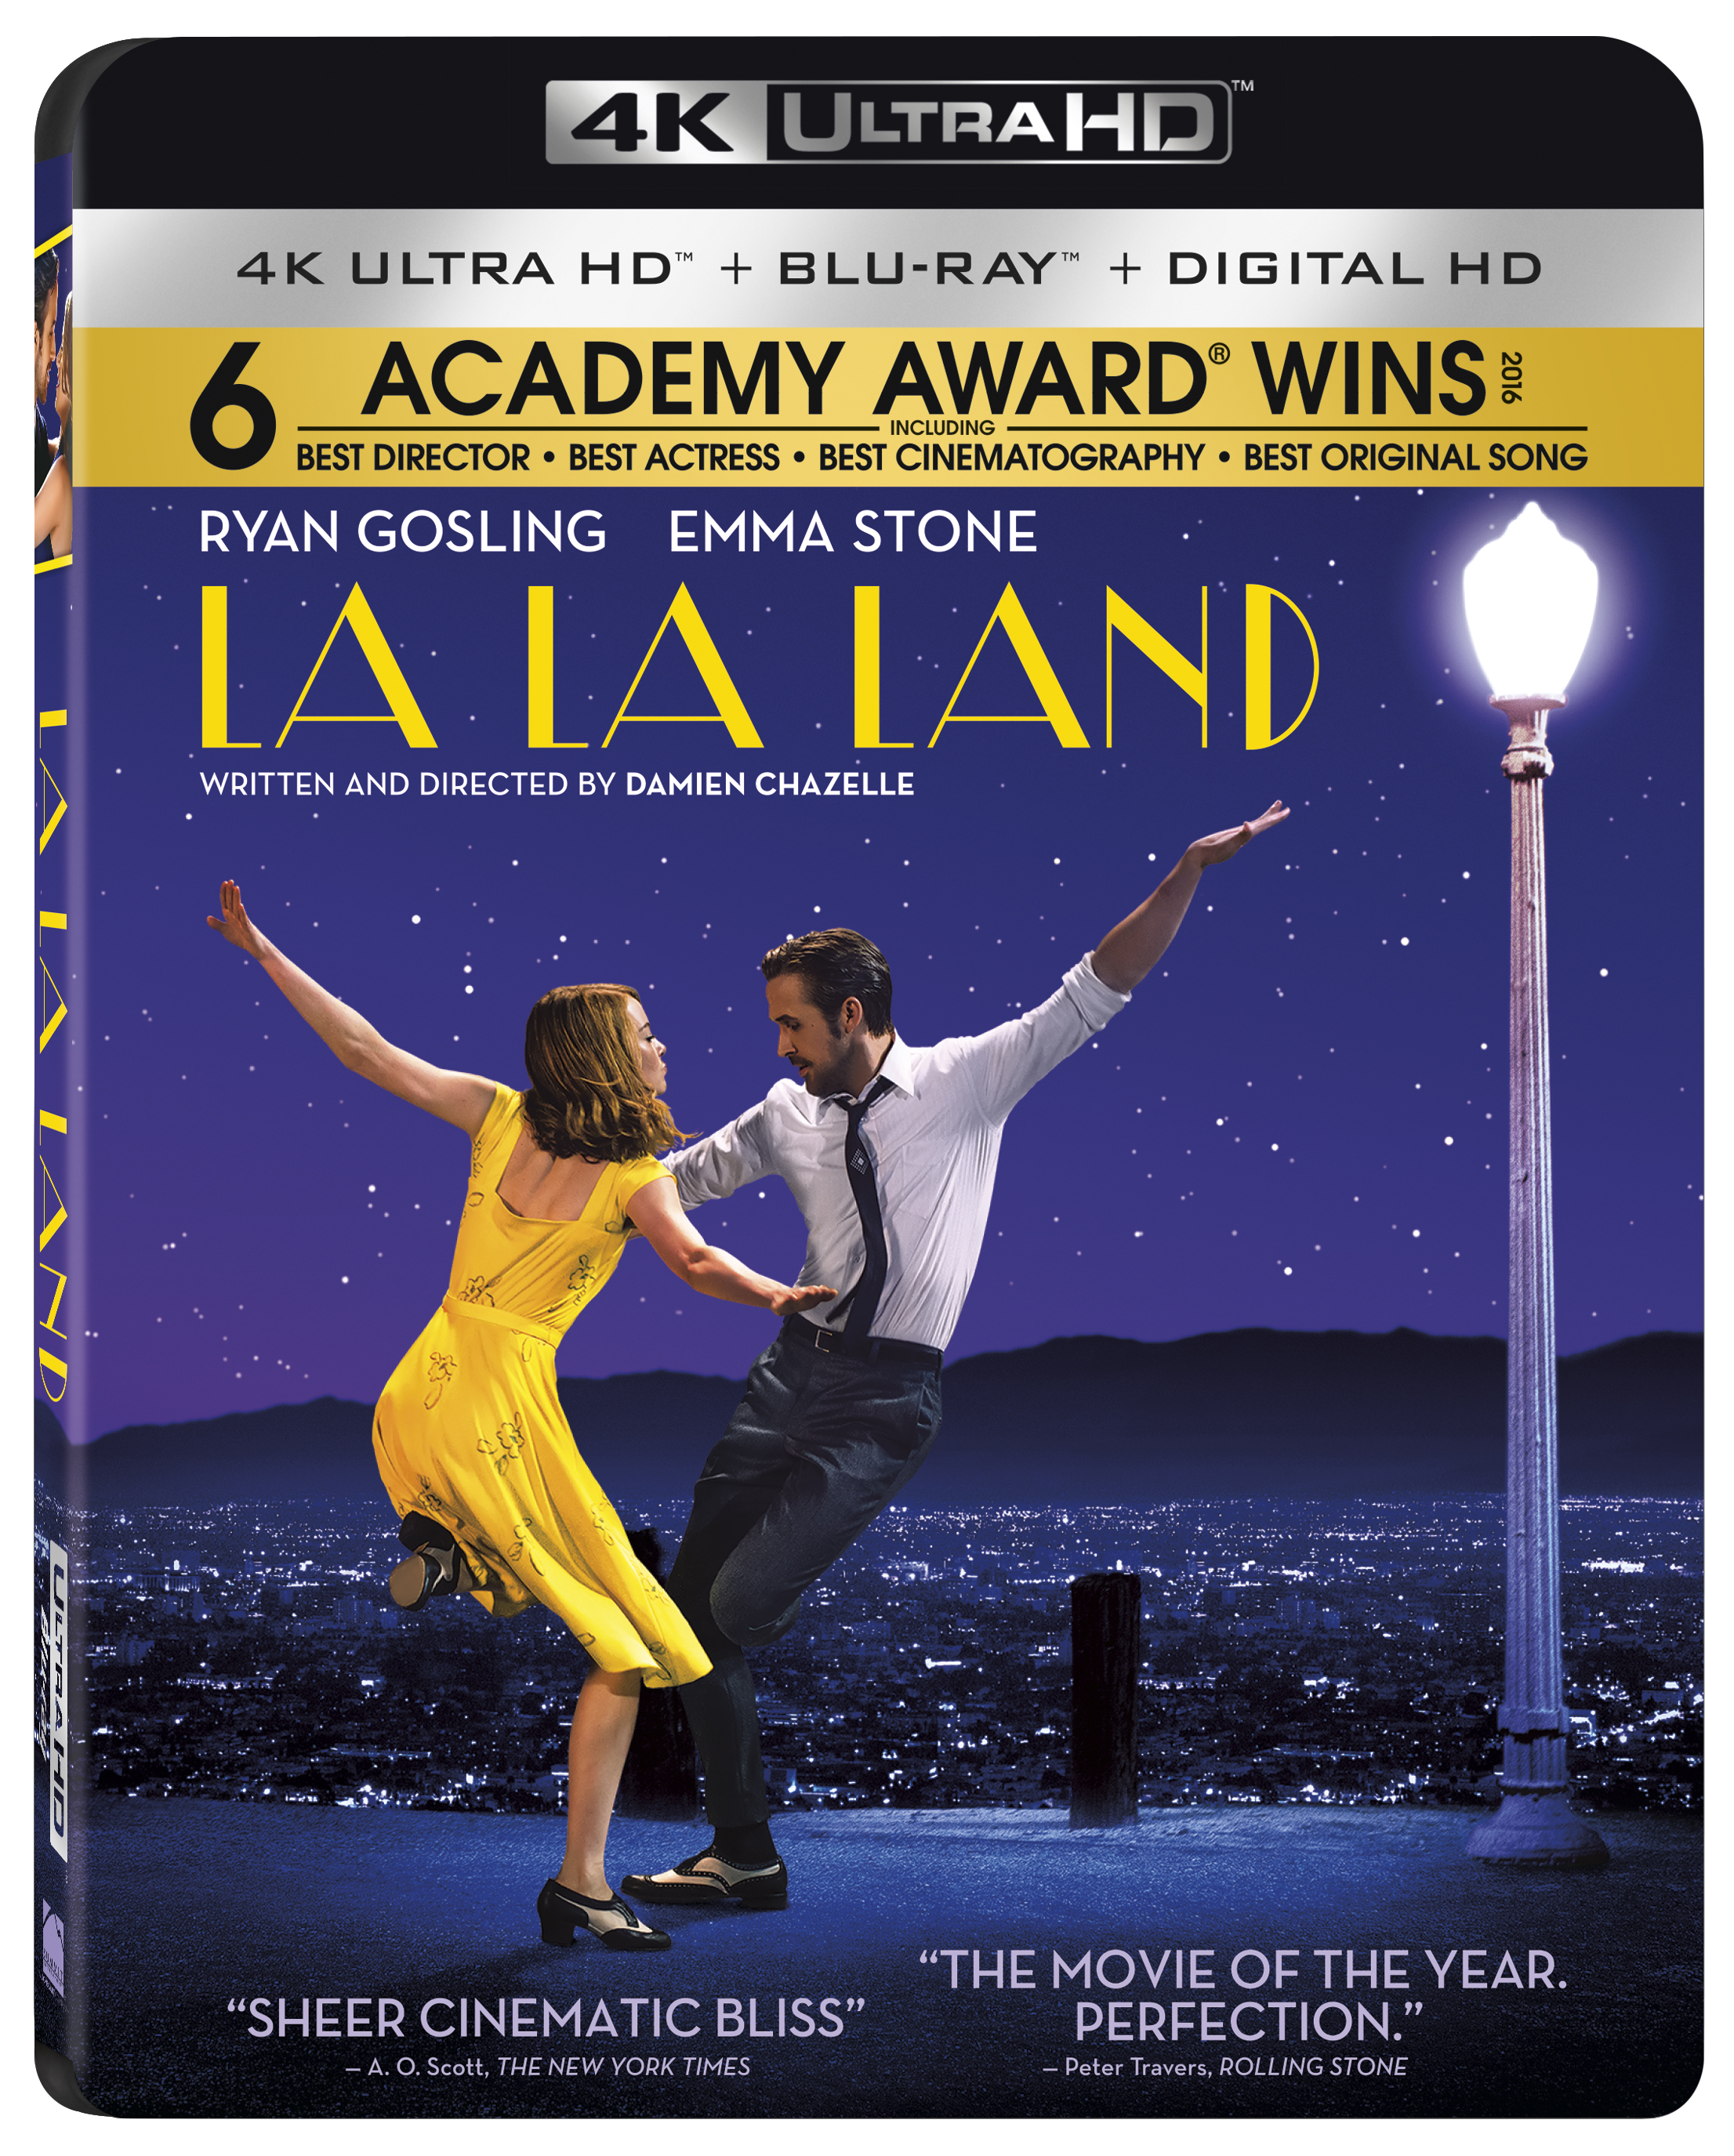 La La Land – The Movie of the Year